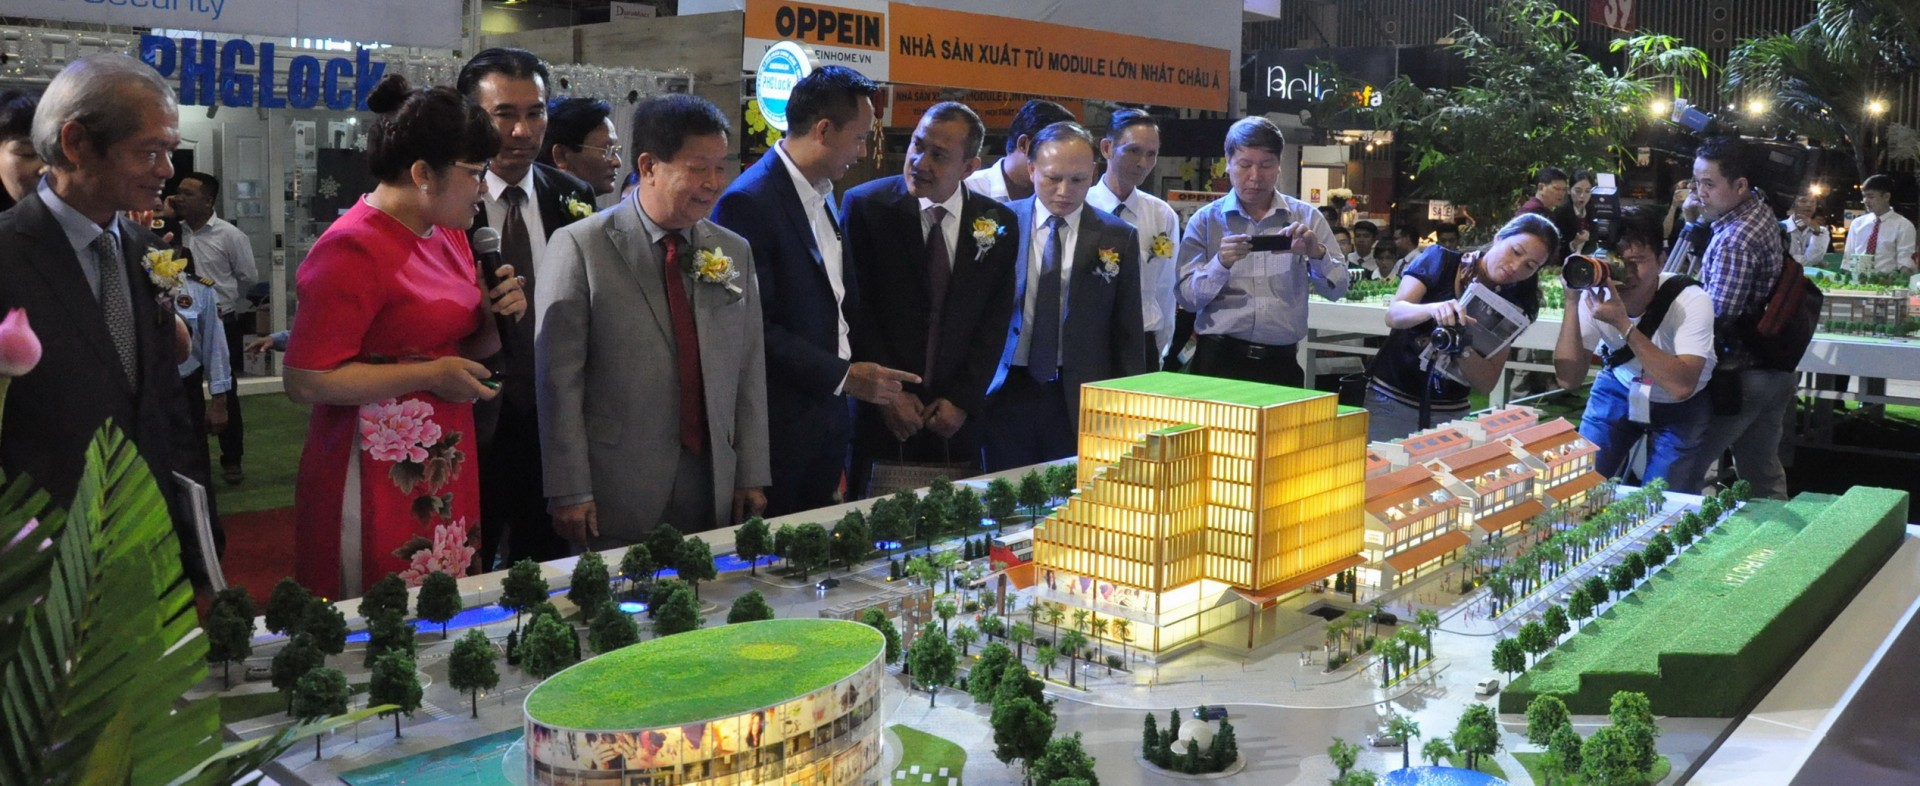 THE INTERNATIONAL EXHIBITION VIETBUILD 2017 - PHASE 2